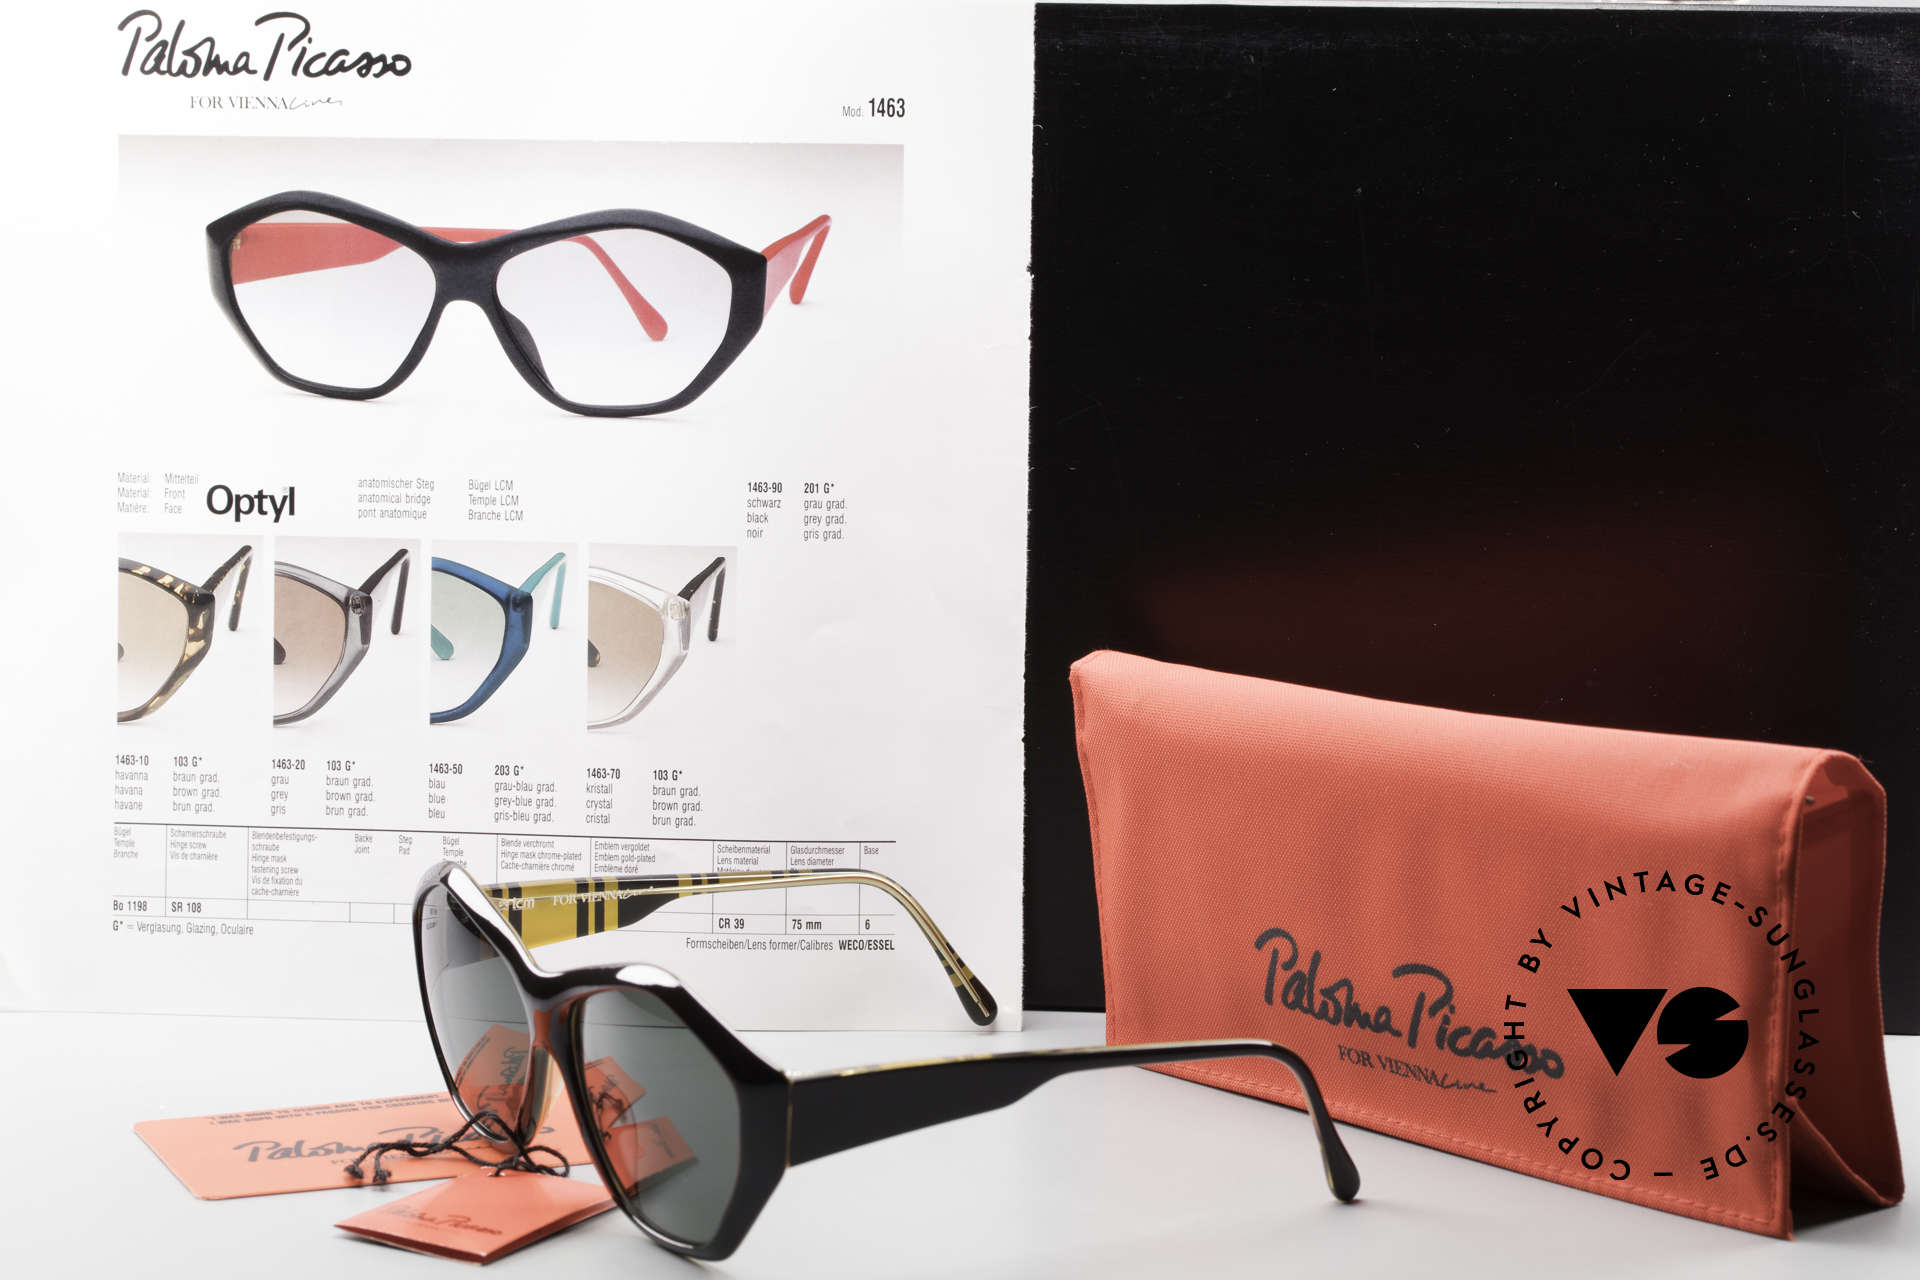 Paloma Picasso 1463 90's Ladies Sunglasses Optyl, Size: medium, Made for Women